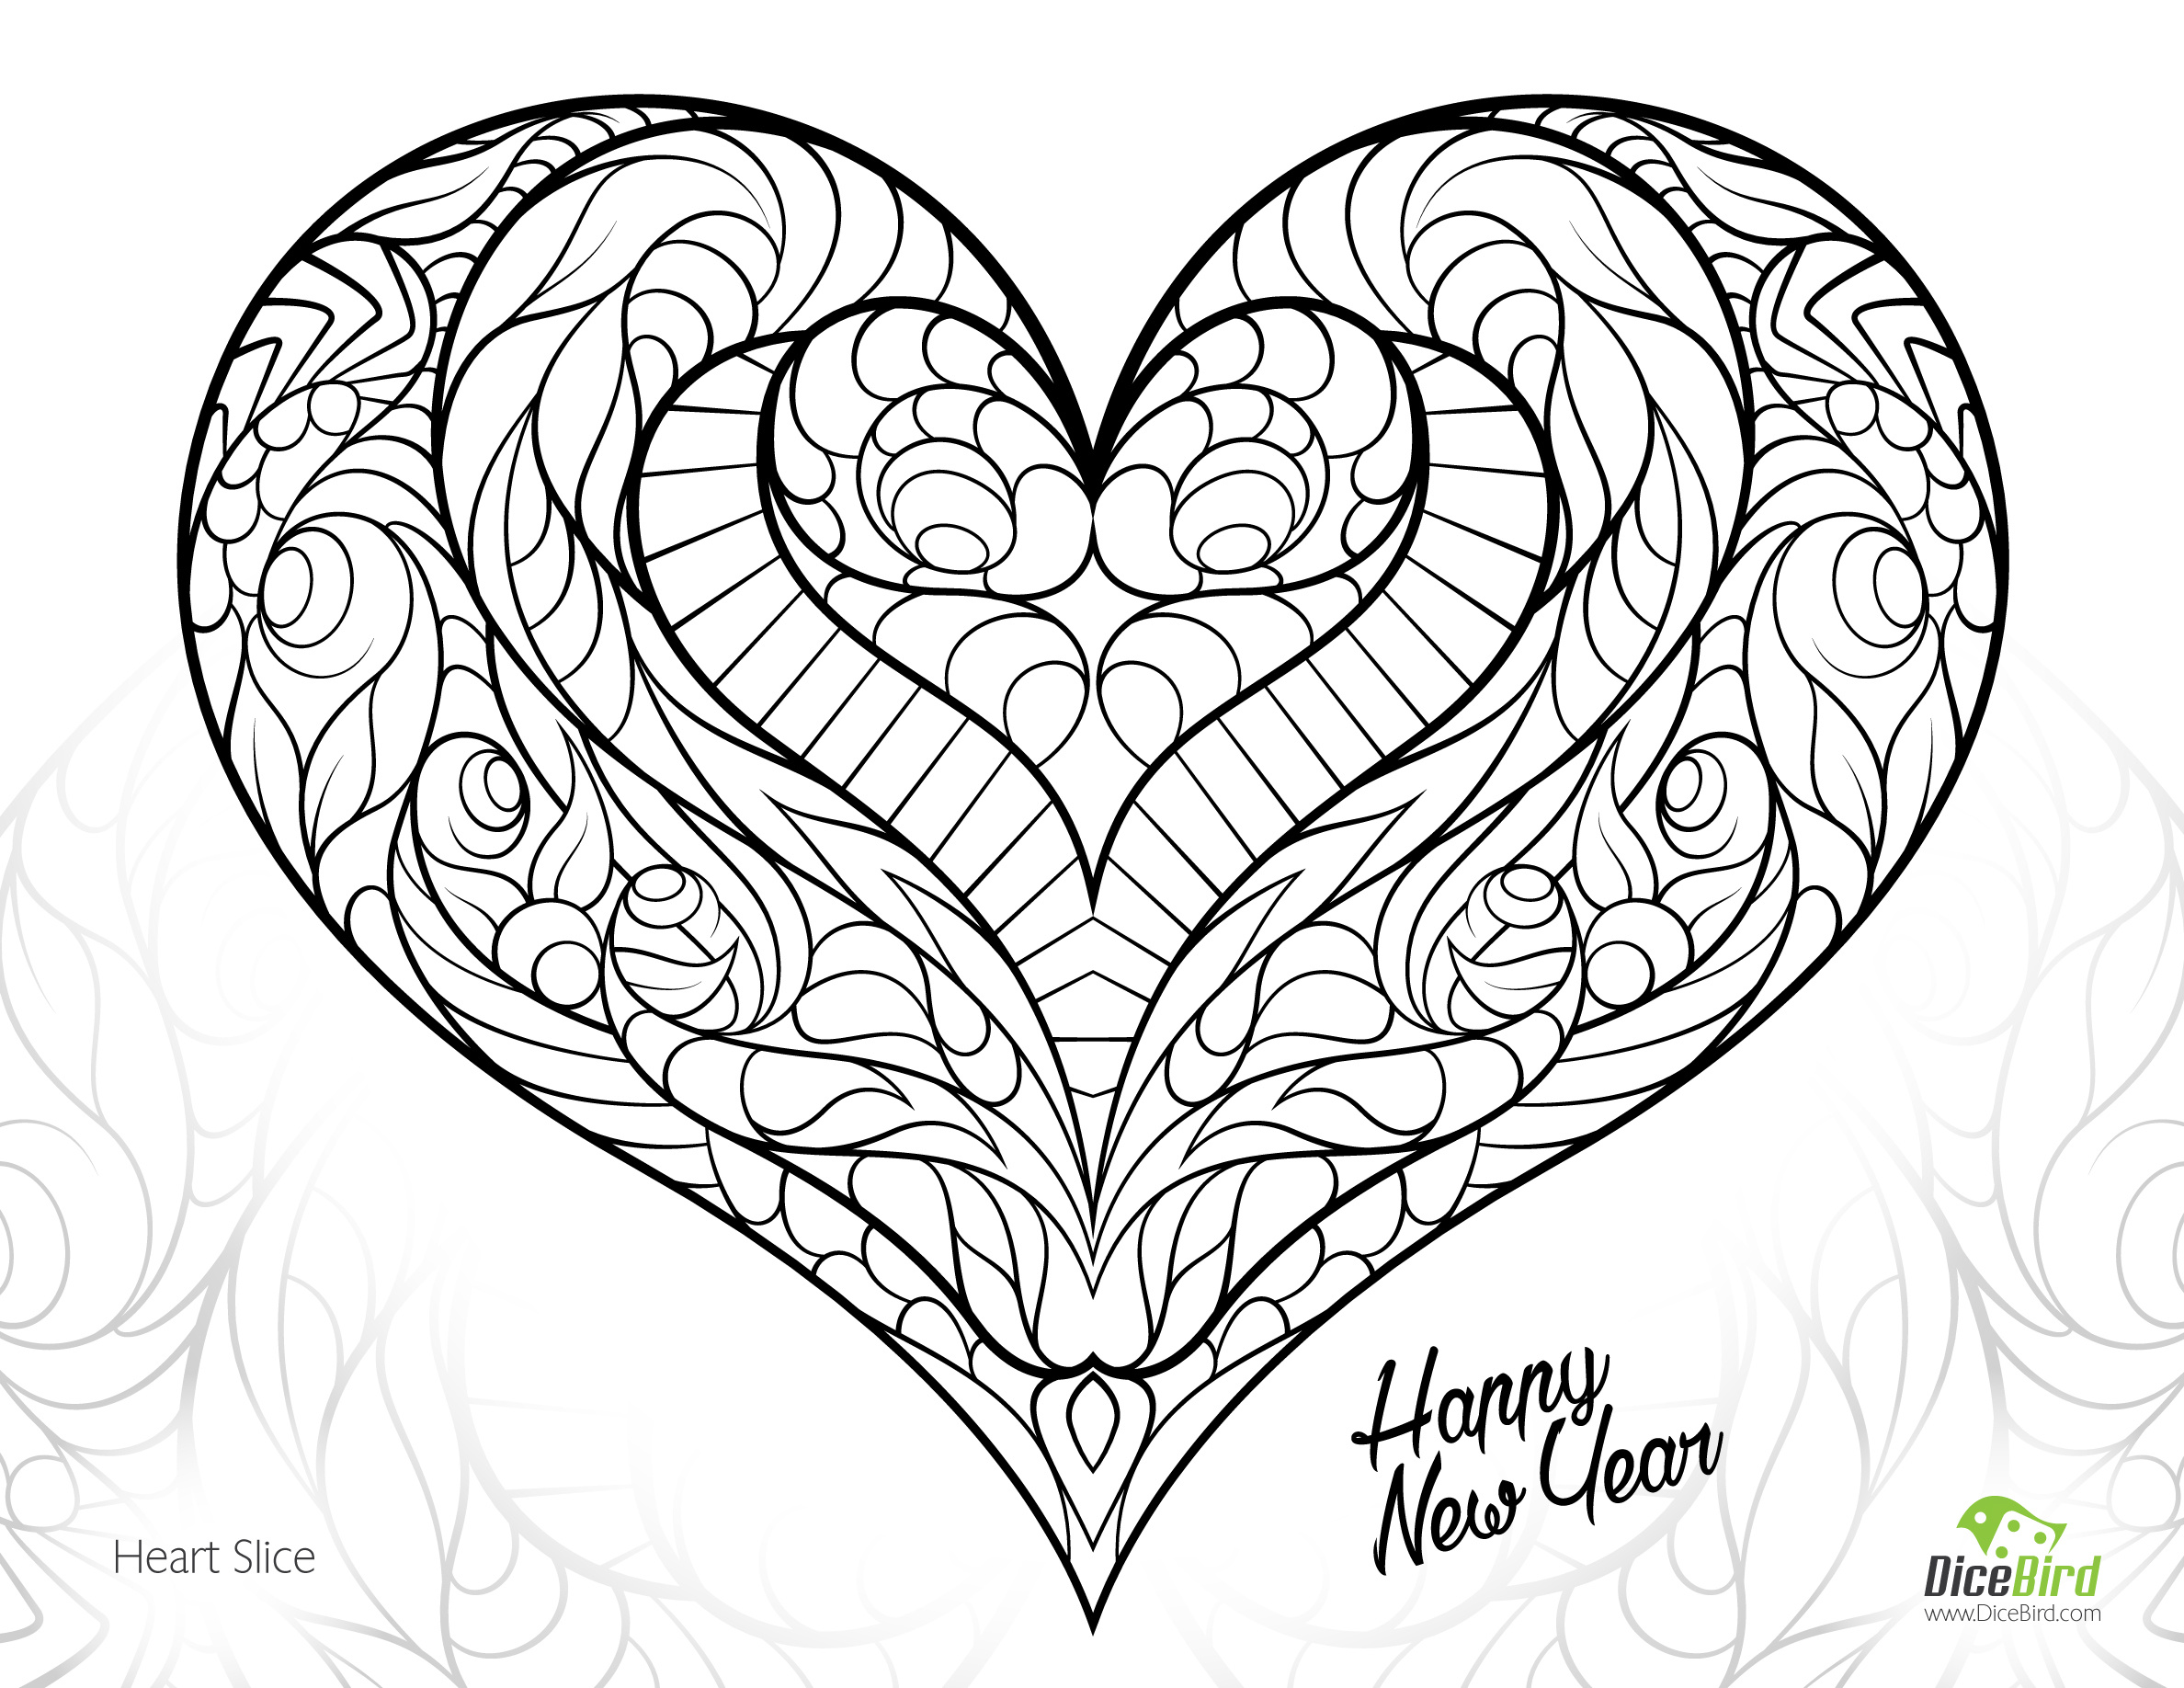 2376x1836 Sure Fire Love Heart Pictures To Print Growth Coloring Pages Out